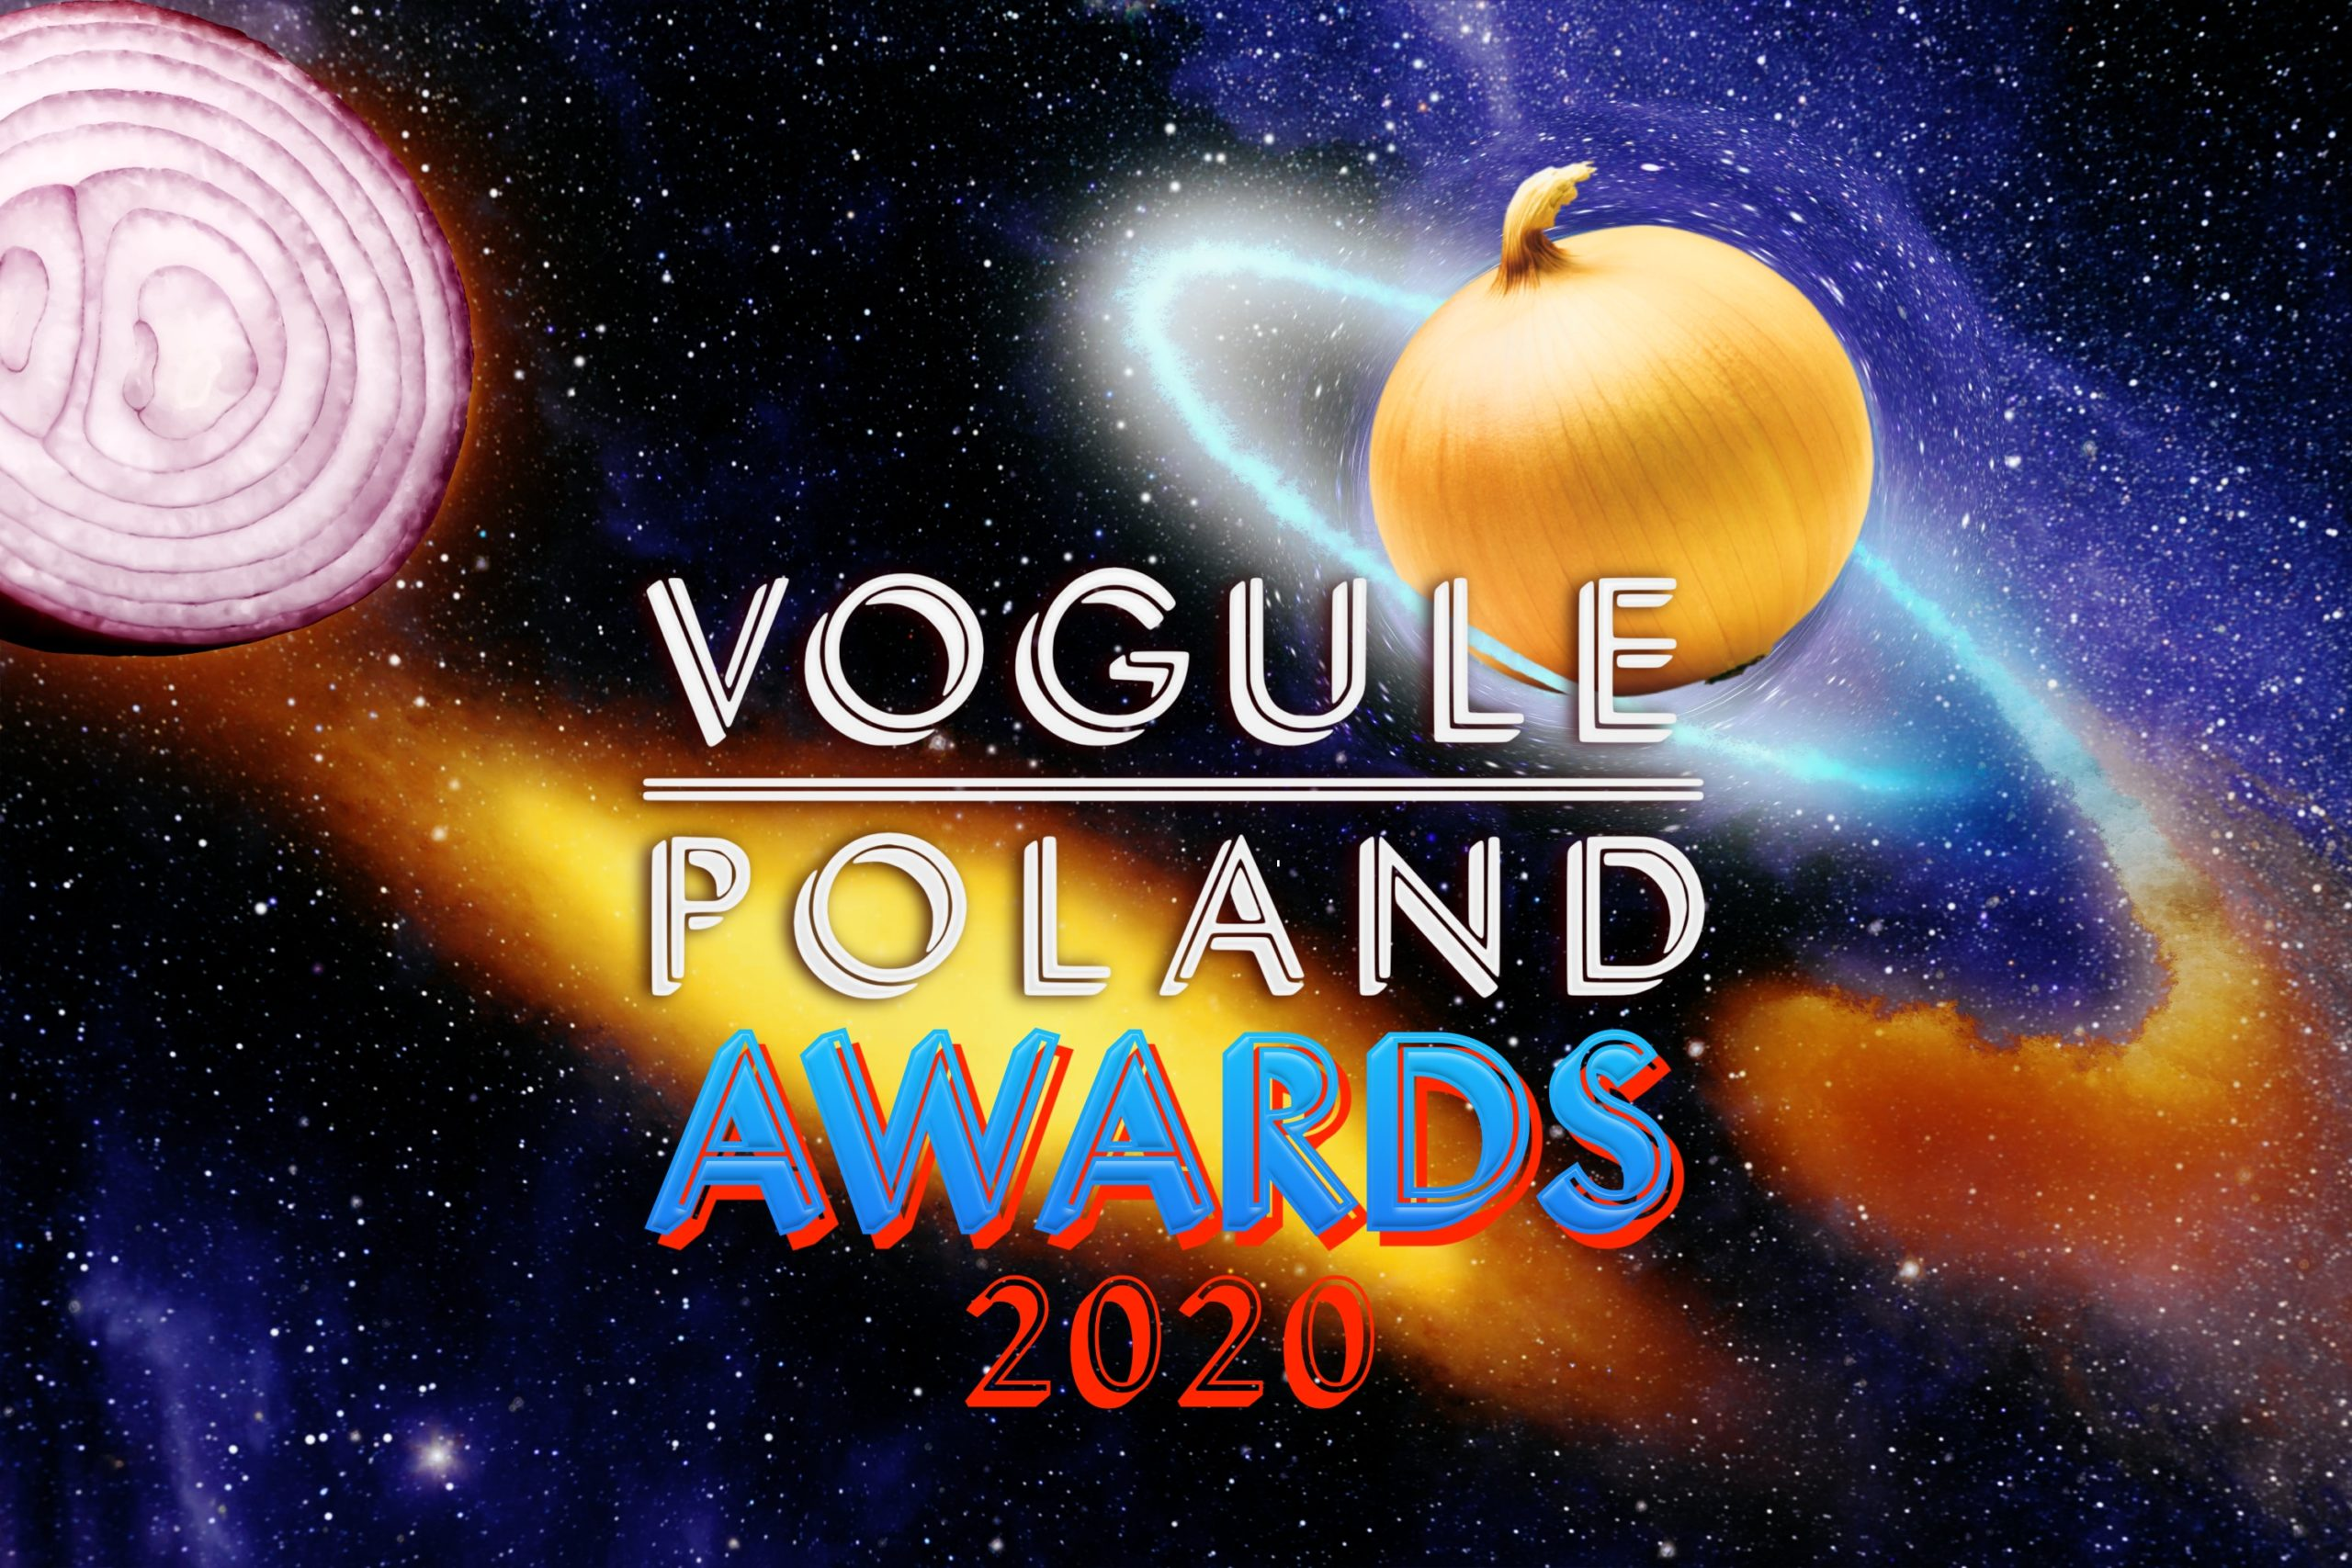 Vogule Poland Awards 2020